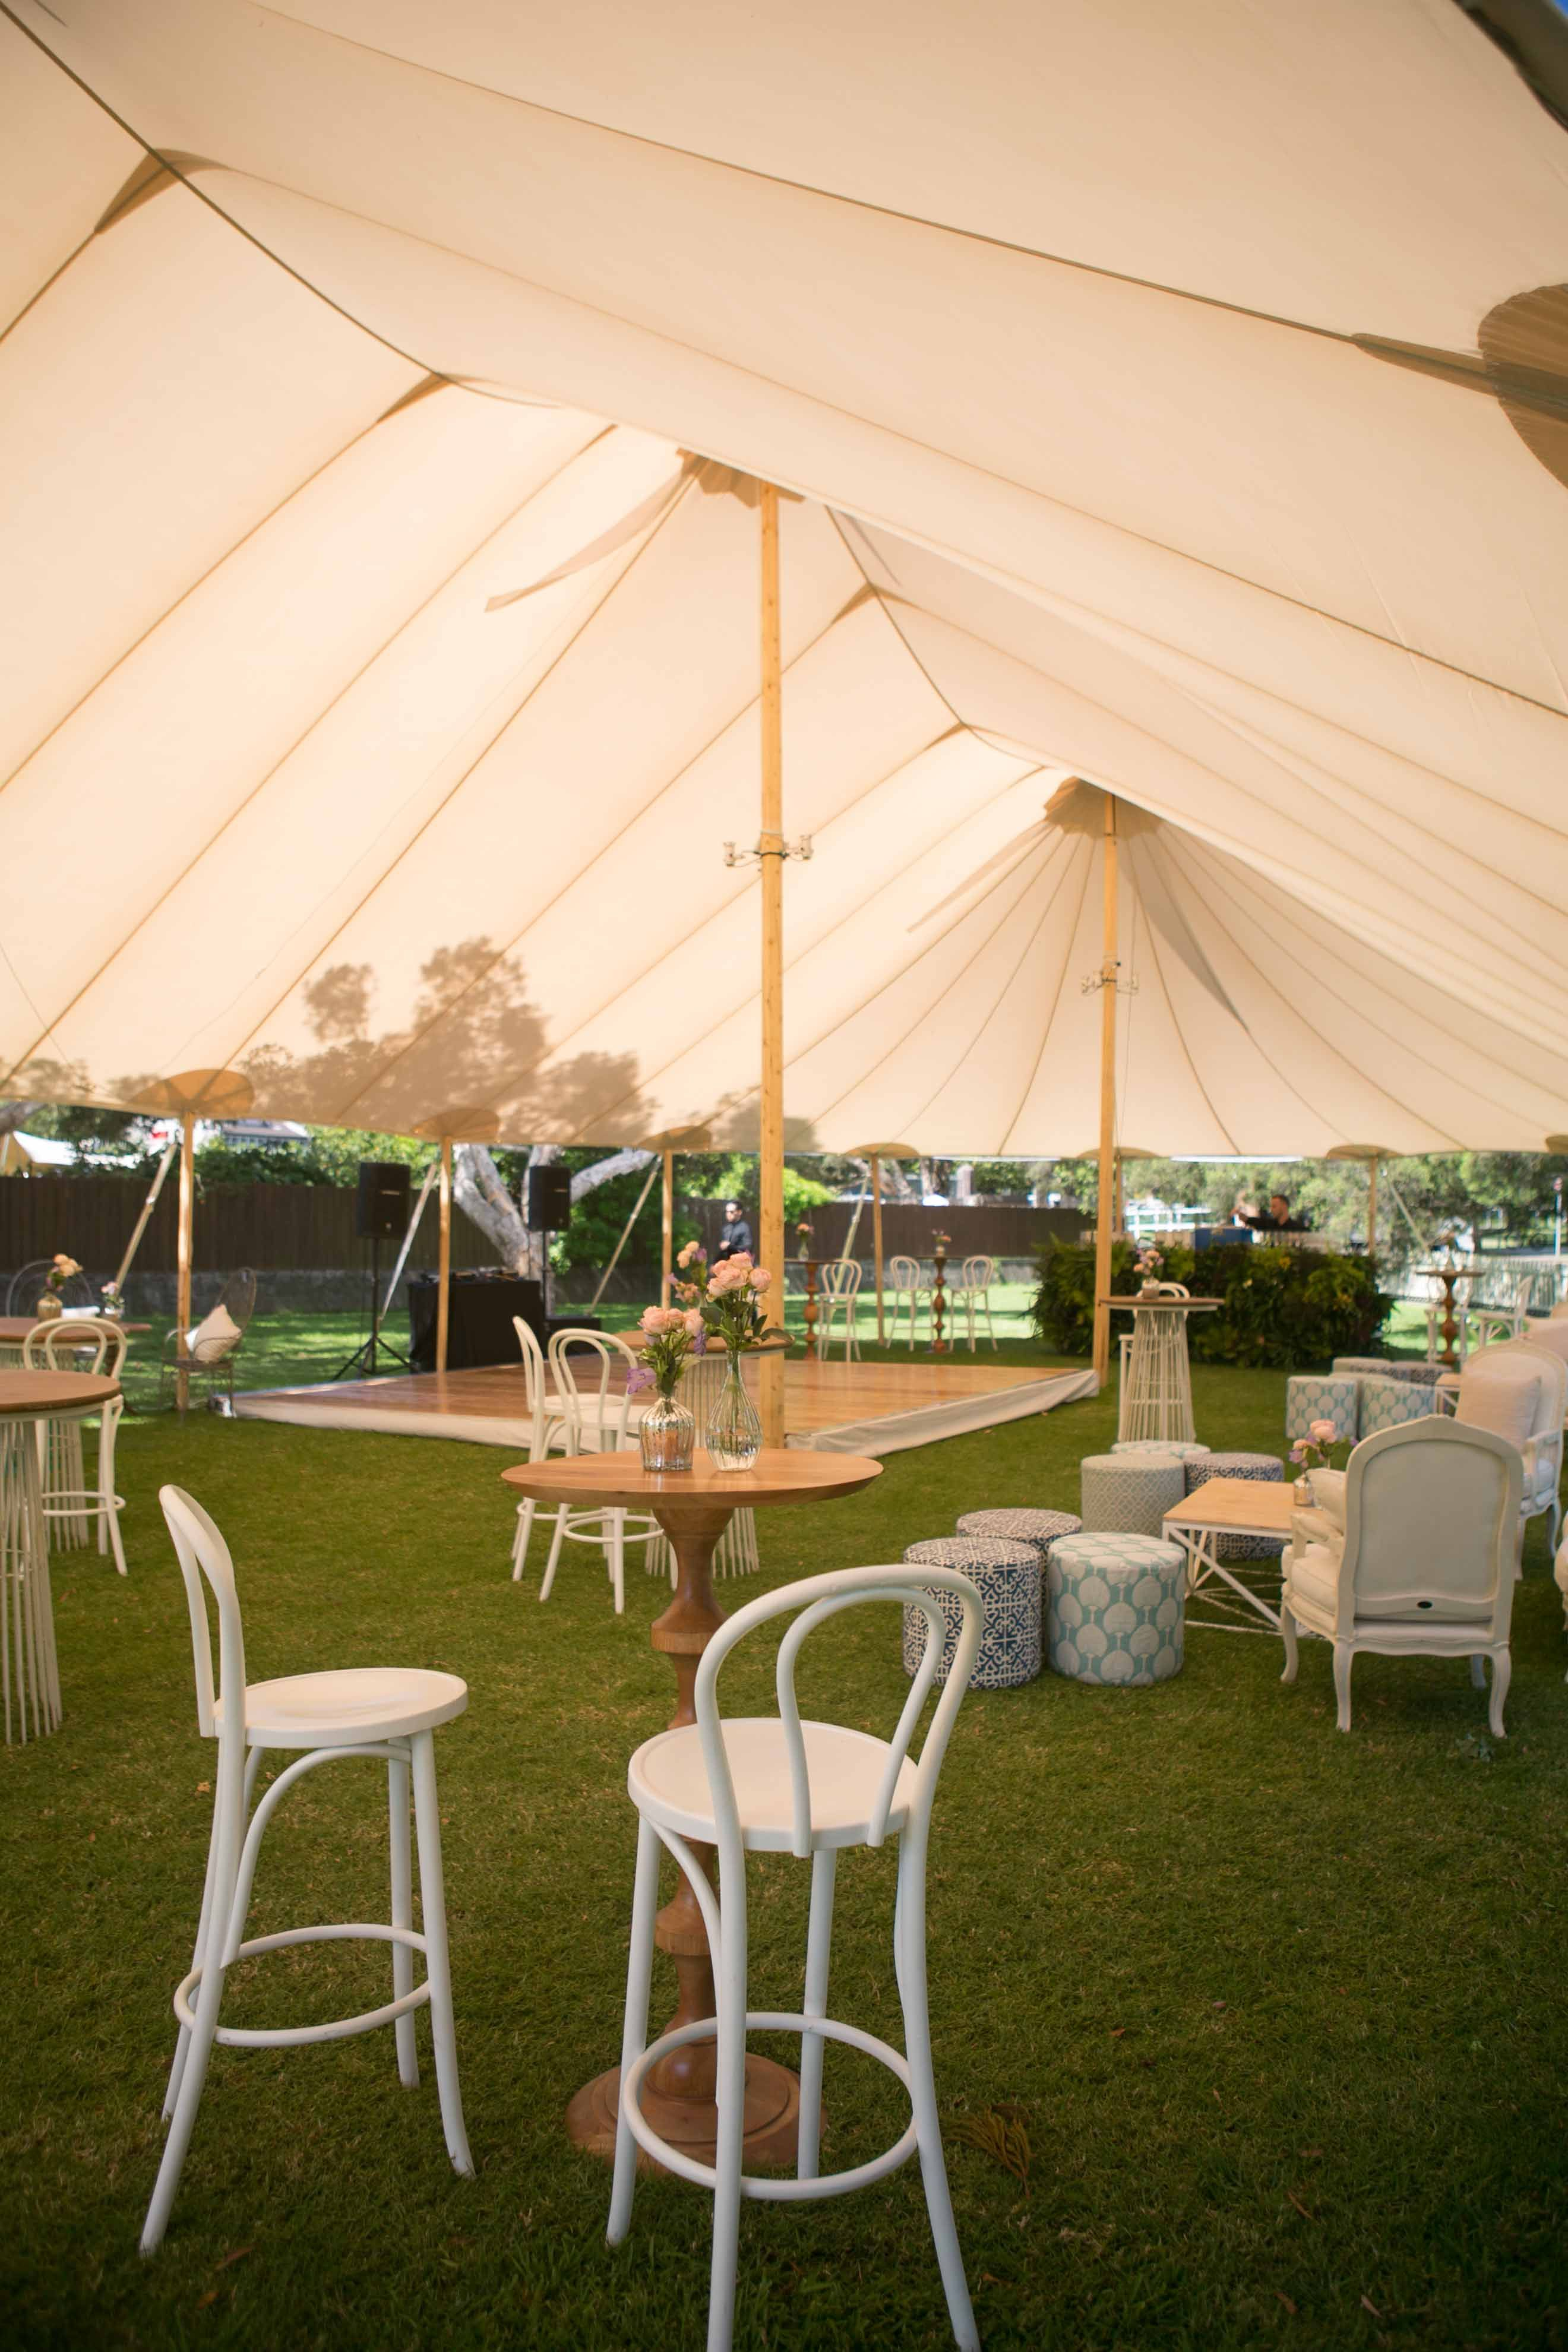 Sperrys party hire wedding event decor tents catering mariage